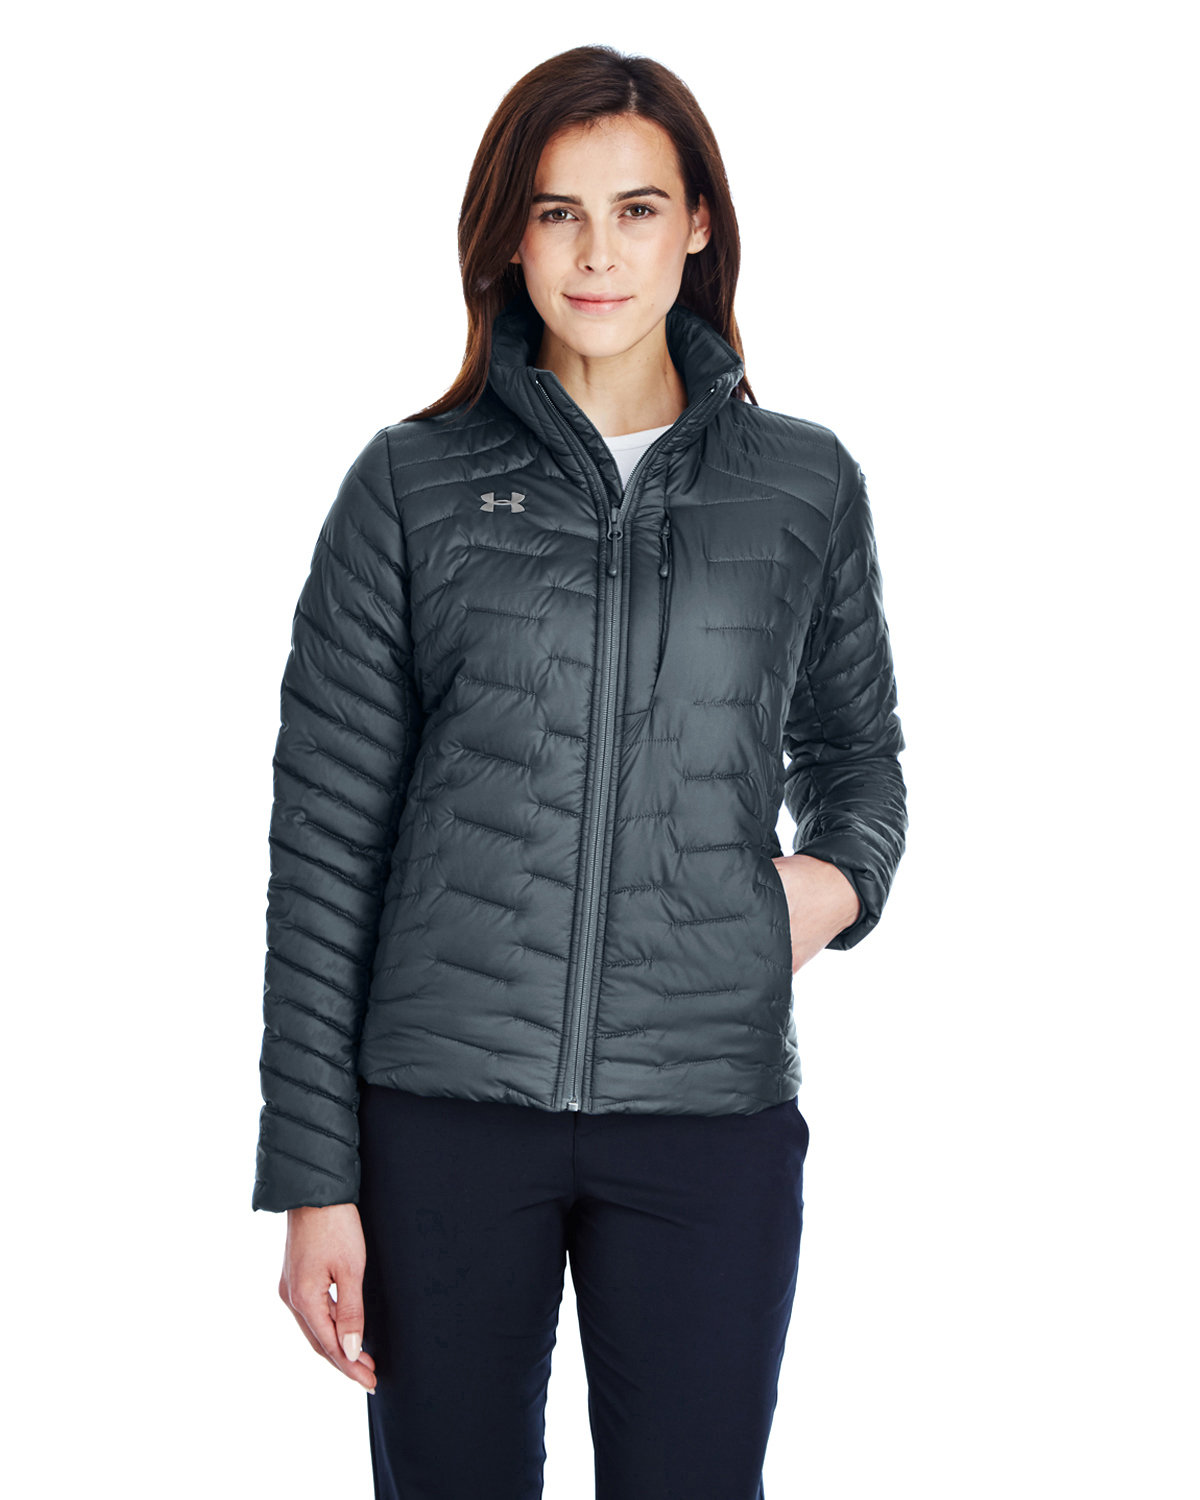 Under Armour SuperSale Ladies' Corporate Reactor Jacket STLTH GR/ ST _008